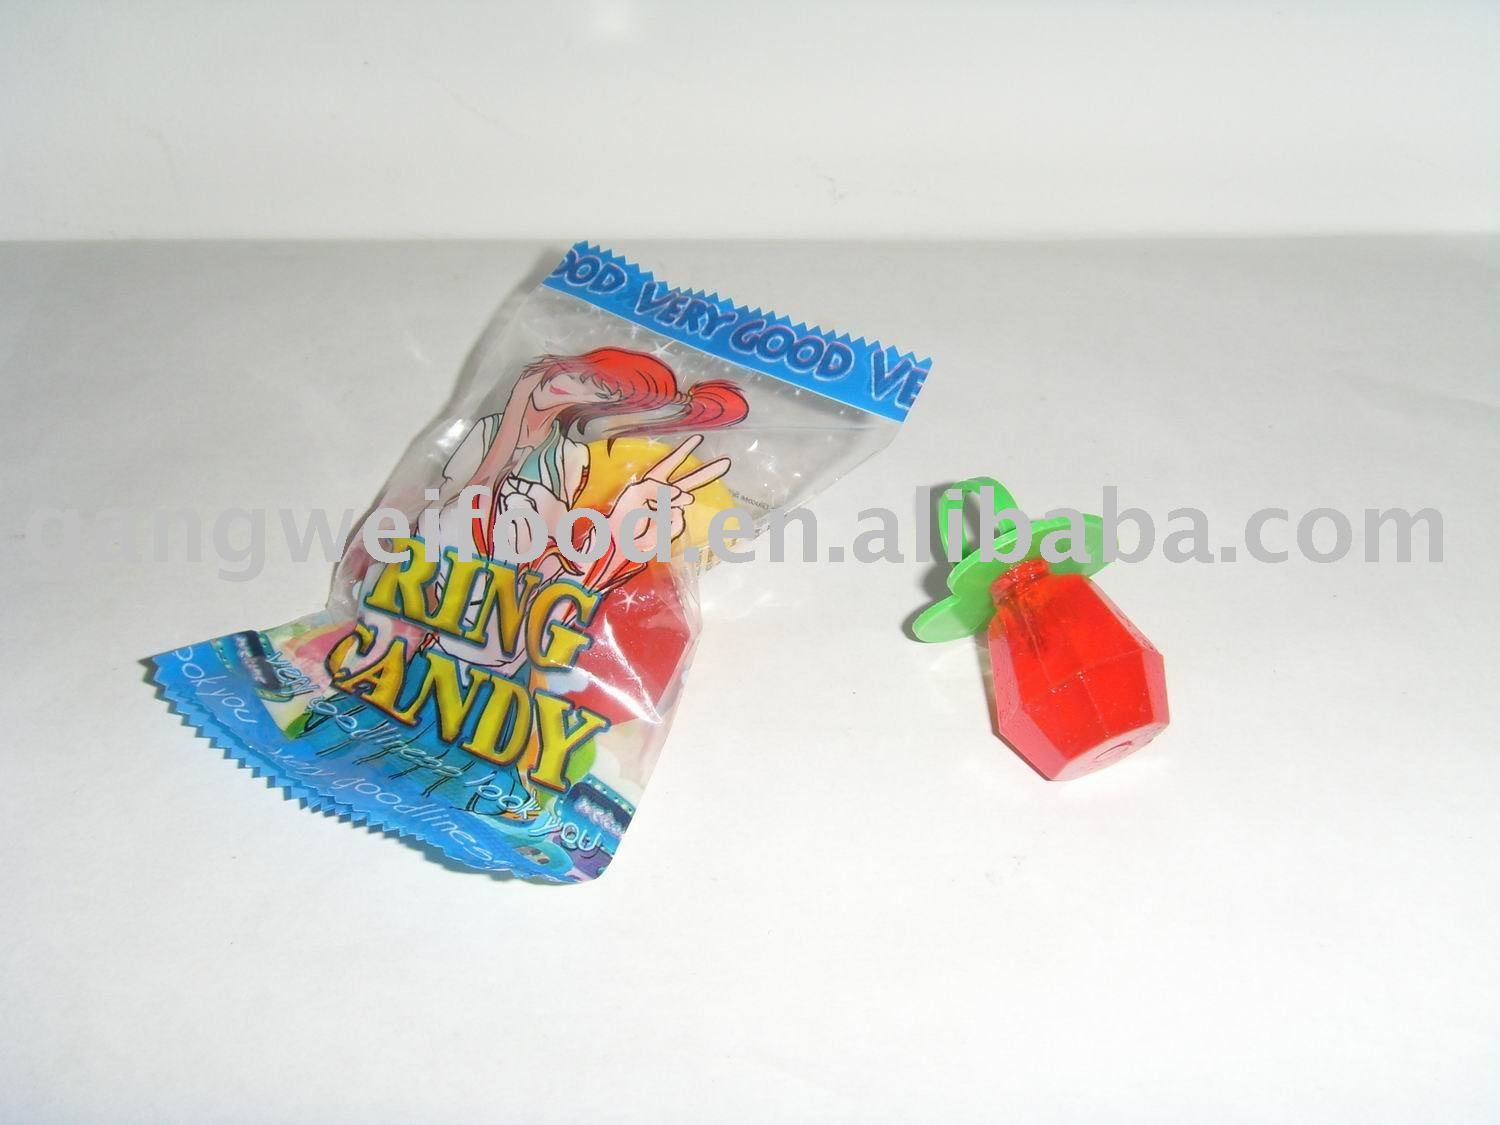 Diamond ring lollipop